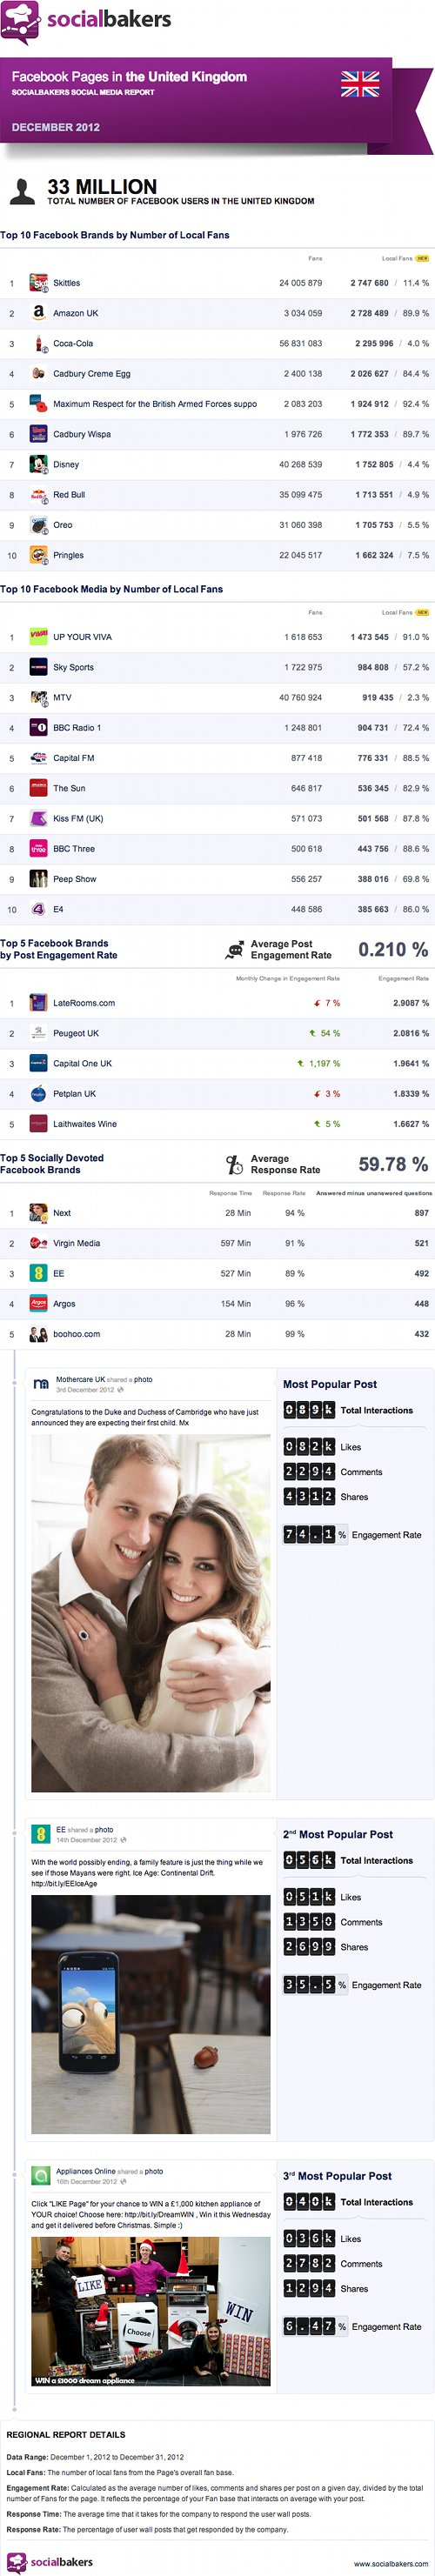 Top Facebook Pages in the UK, Dec '12